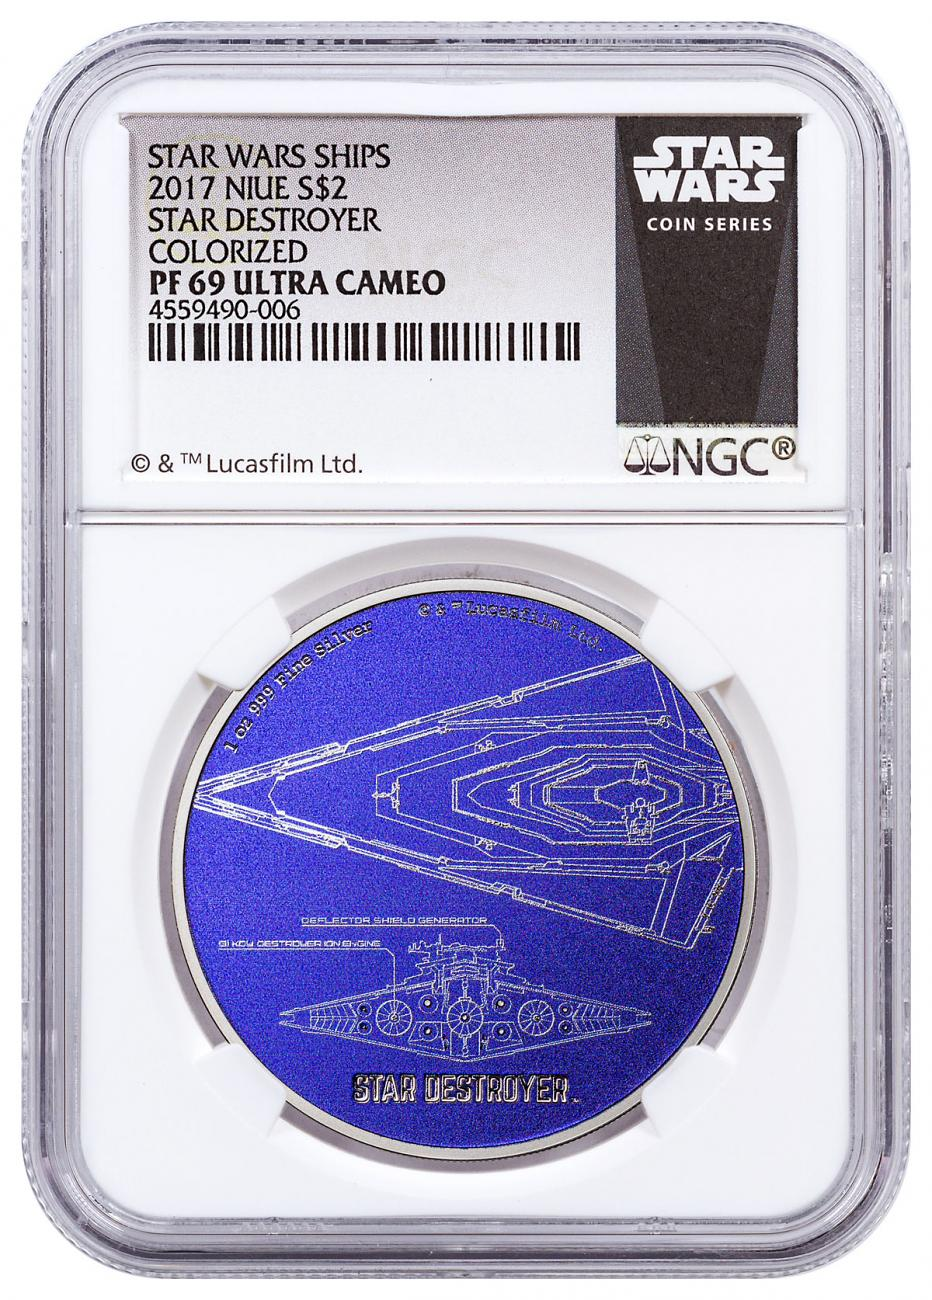 2017 Niue Star Wars Ships - Star Destroyer 1 oz Silver Colorized Proof $2 Coin NGC PF69 UC Exclusive Star Wars Label